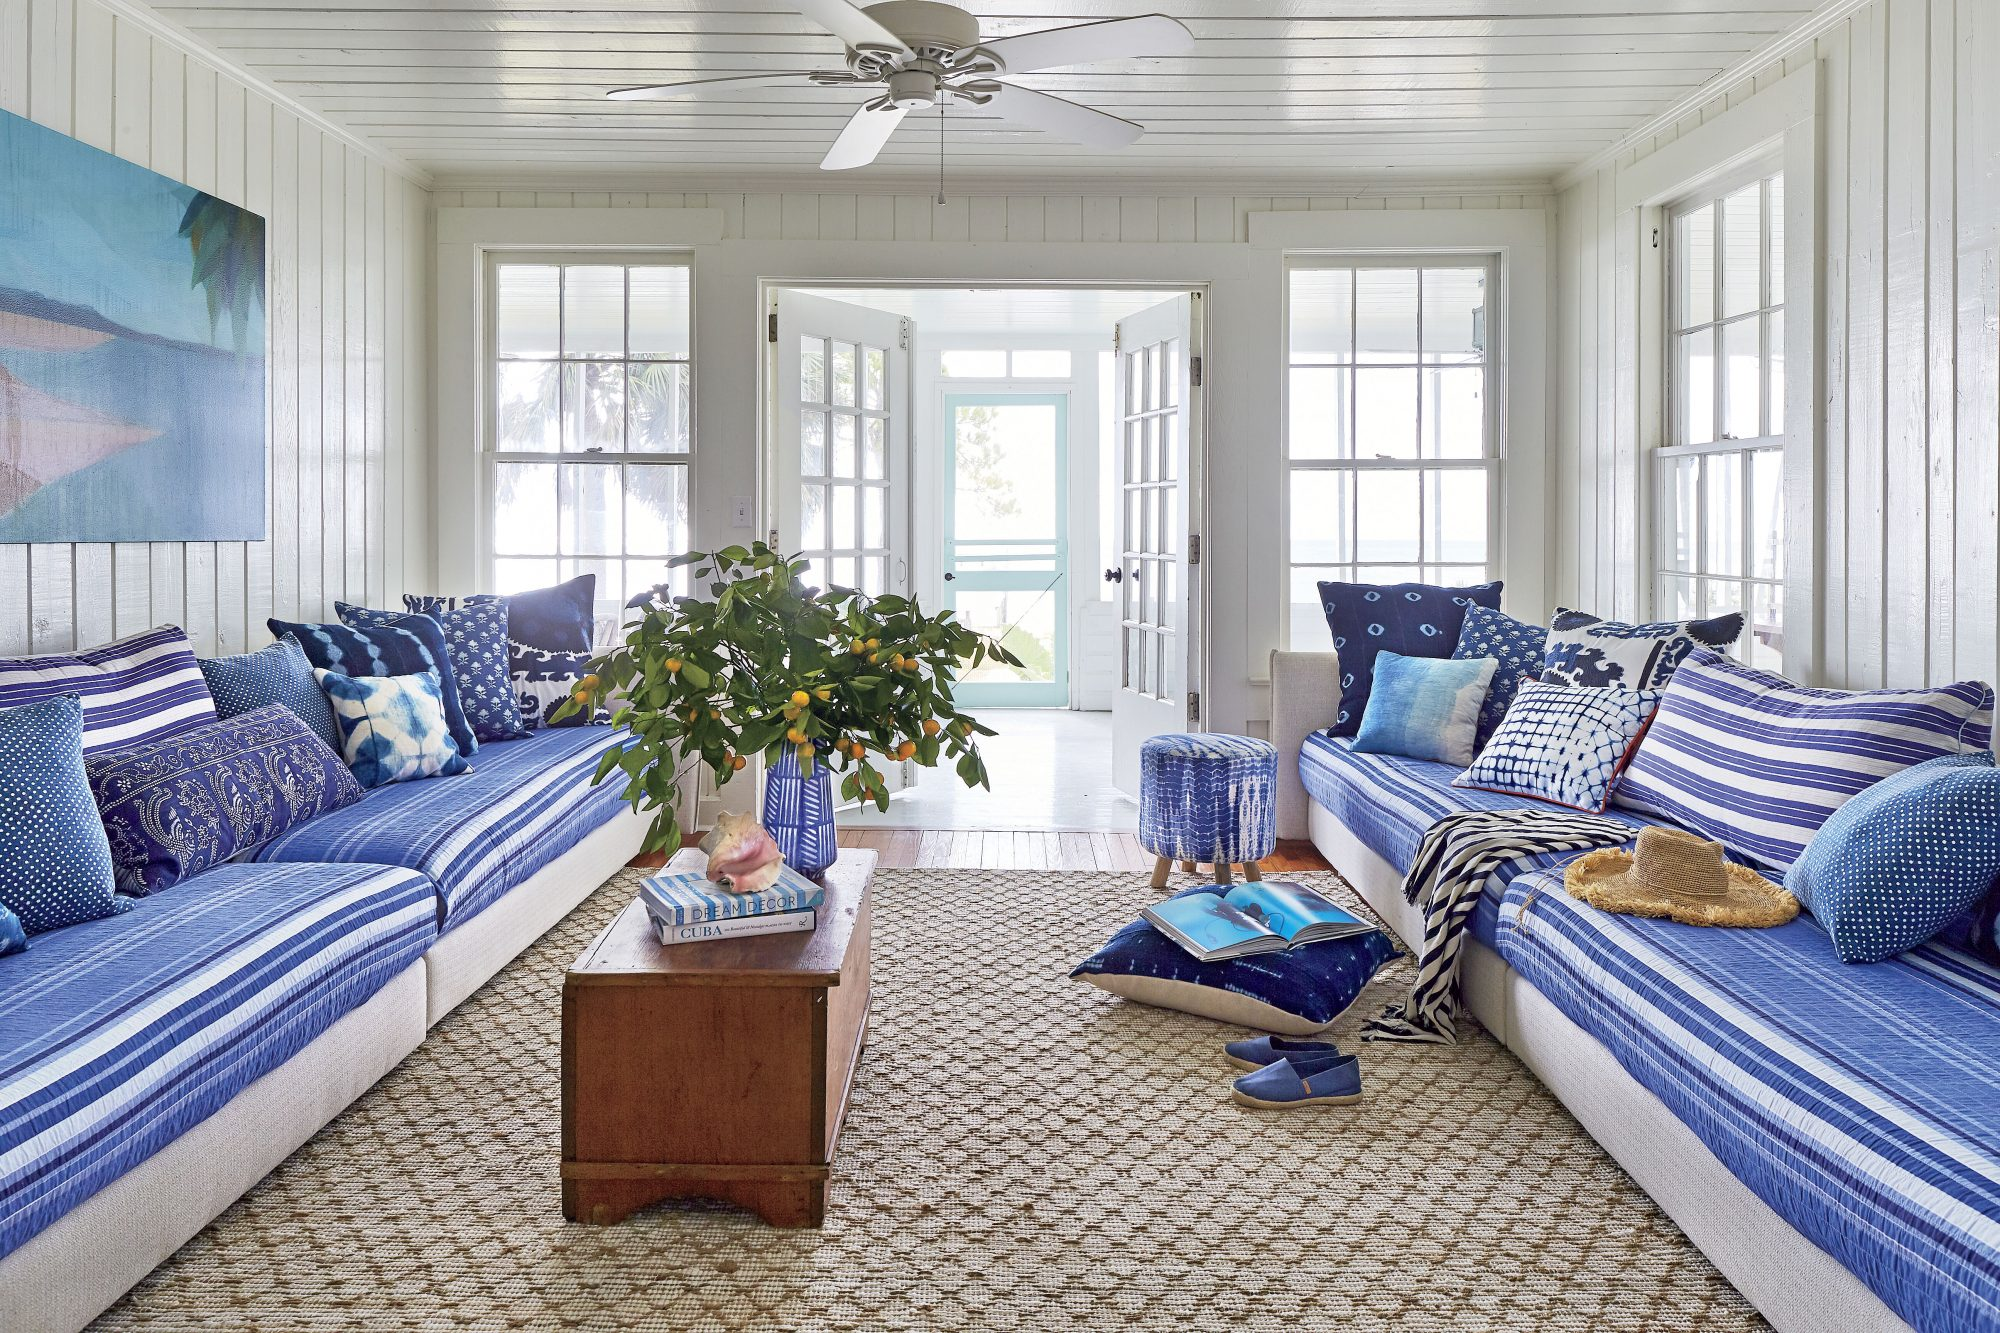 St. Teresa, FL Beach House Blue and White Living Room with Daybeds